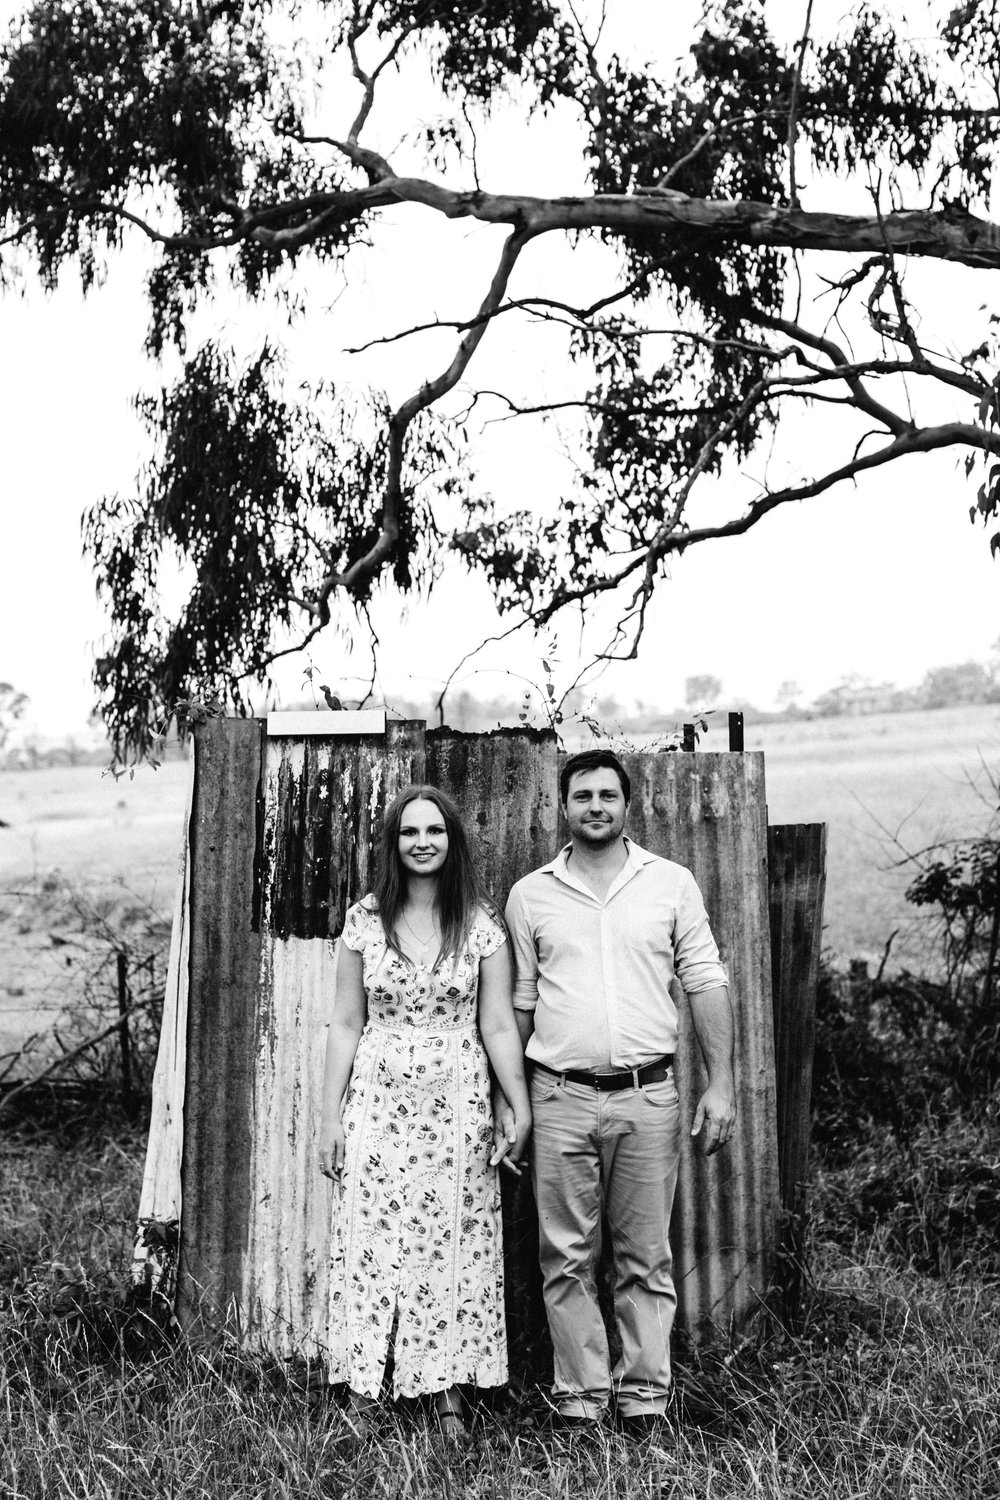 camden-engagement-session-wollondilly-photography-nadine-bernard-26.jpg